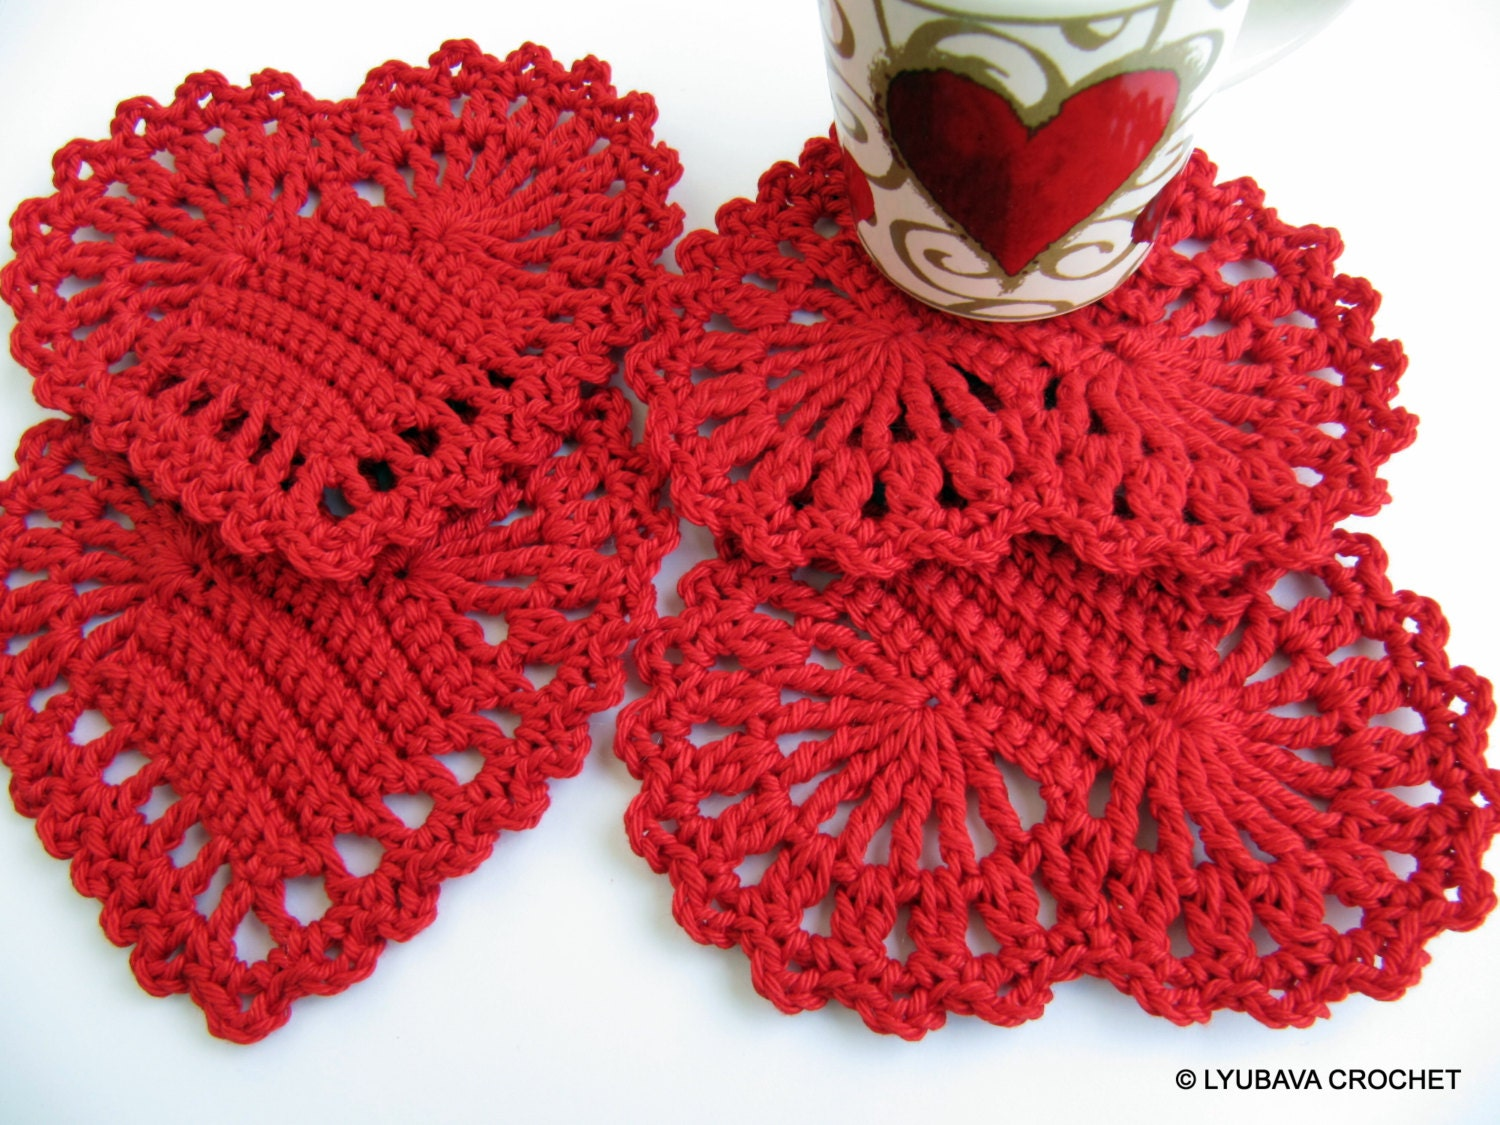 Crochet PATTERN Red Heart Coasters DIY Crochet Gifts